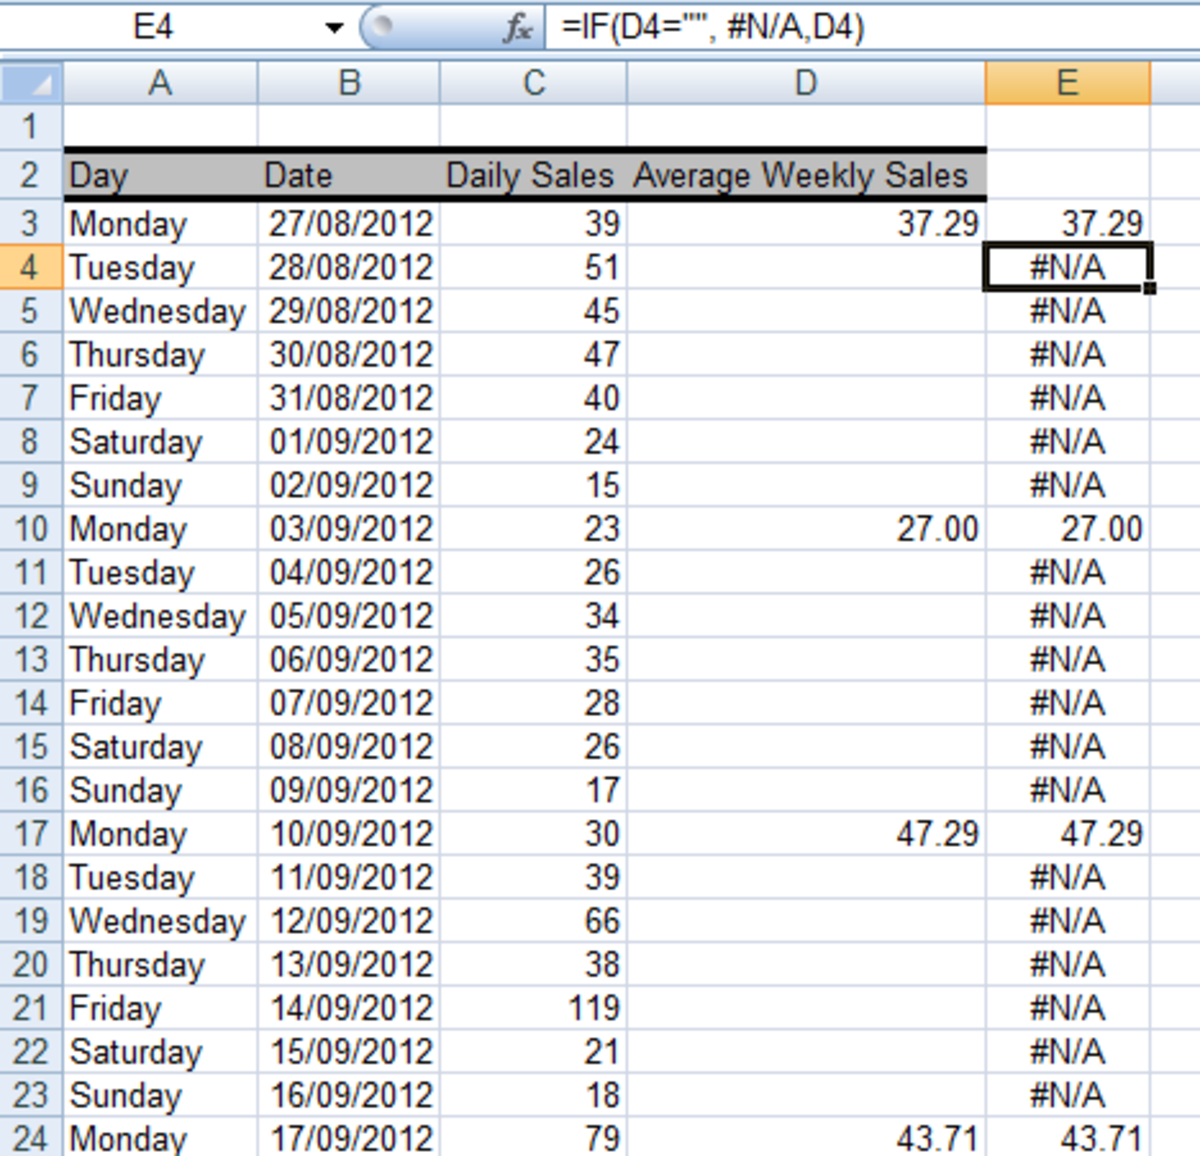 Ediblewildsus  Pretty How To Get Excel  And  To Ignore Empty Cells In A Chart Or  With Licious Using The If Function In A Formula To Convert Empty Cells To Na With Breathtaking Short Cut Keys In Ms Excel Also Excel Task List Template In Addition Download Microsoft Excel  And Form In Excel As Well As Add One Month In Excel Additionally Excel Random Number Generator No Duplicates From Turbofuturecom With Ediblewildsus  Licious How To Get Excel  And  To Ignore Empty Cells In A Chart Or  With Breathtaking Using The If Function In A Formula To Convert Empty Cells To Na And Pretty Short Cut Keys In Ms Excel Also Excel Task List Template In Addition Download Microsoft Excel  From Turbofuturecom